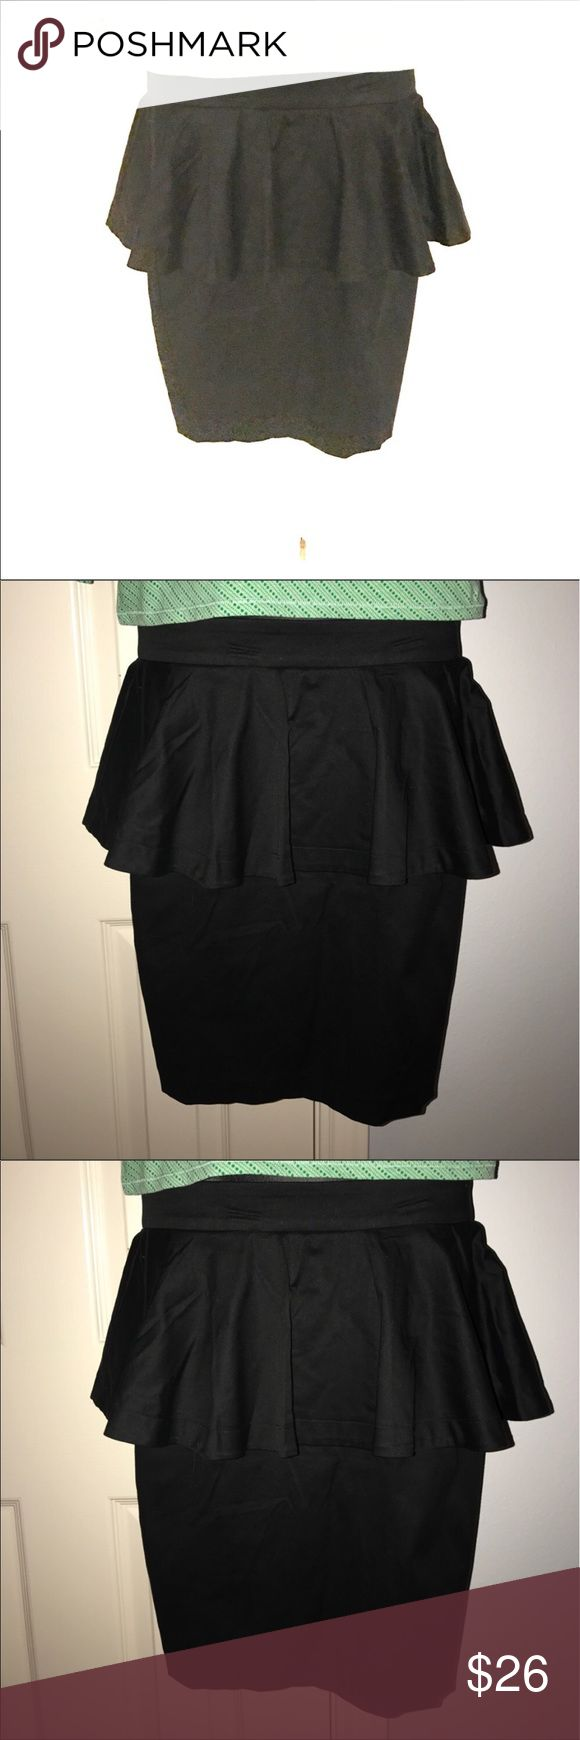 """XXI black pencil peplum skirt sz M XXI brand peplum pencil skirt in basic black to match everything. Size medium. Zip back. 97% cotton, 3% spandex. Dry clean. GUC. Bundle to save even more. Measures almost 20"""" in length and approximately 27.5"""" in the waist. Bundle with other items in my closet to save even more. Skirts Pencil"""